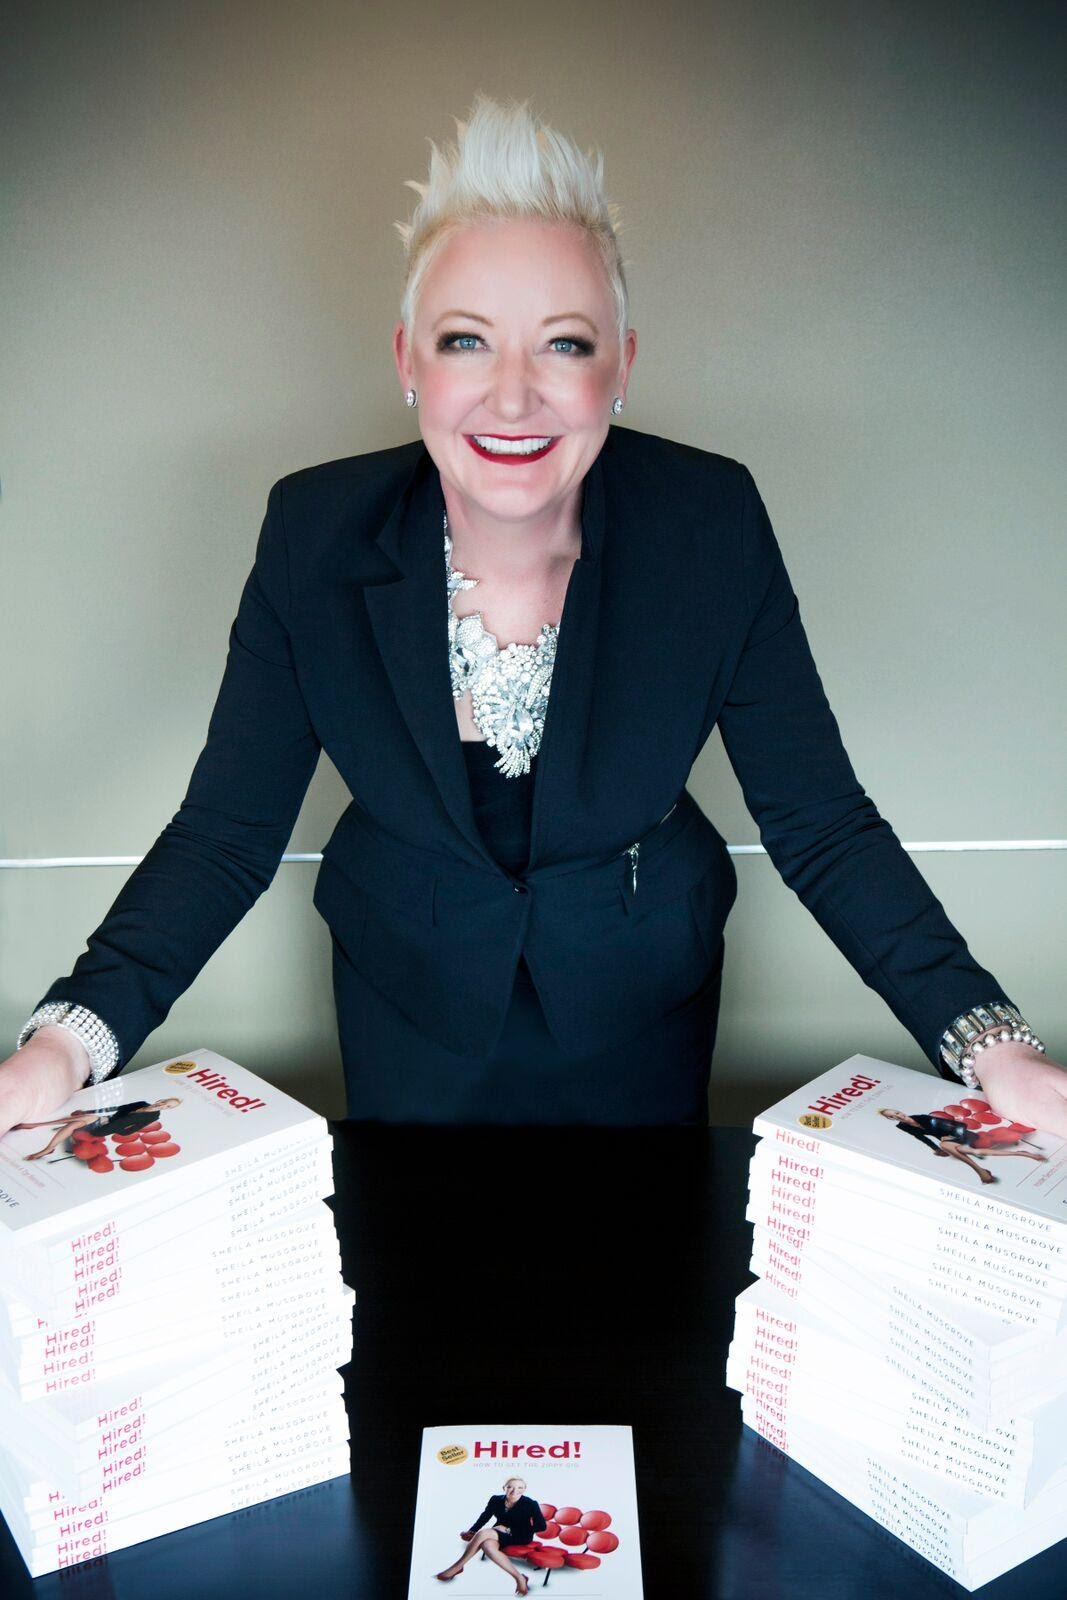 Sheila Musgrove |Founder of TAG Recruitment and Amazon Best-Selling Author of Hired!